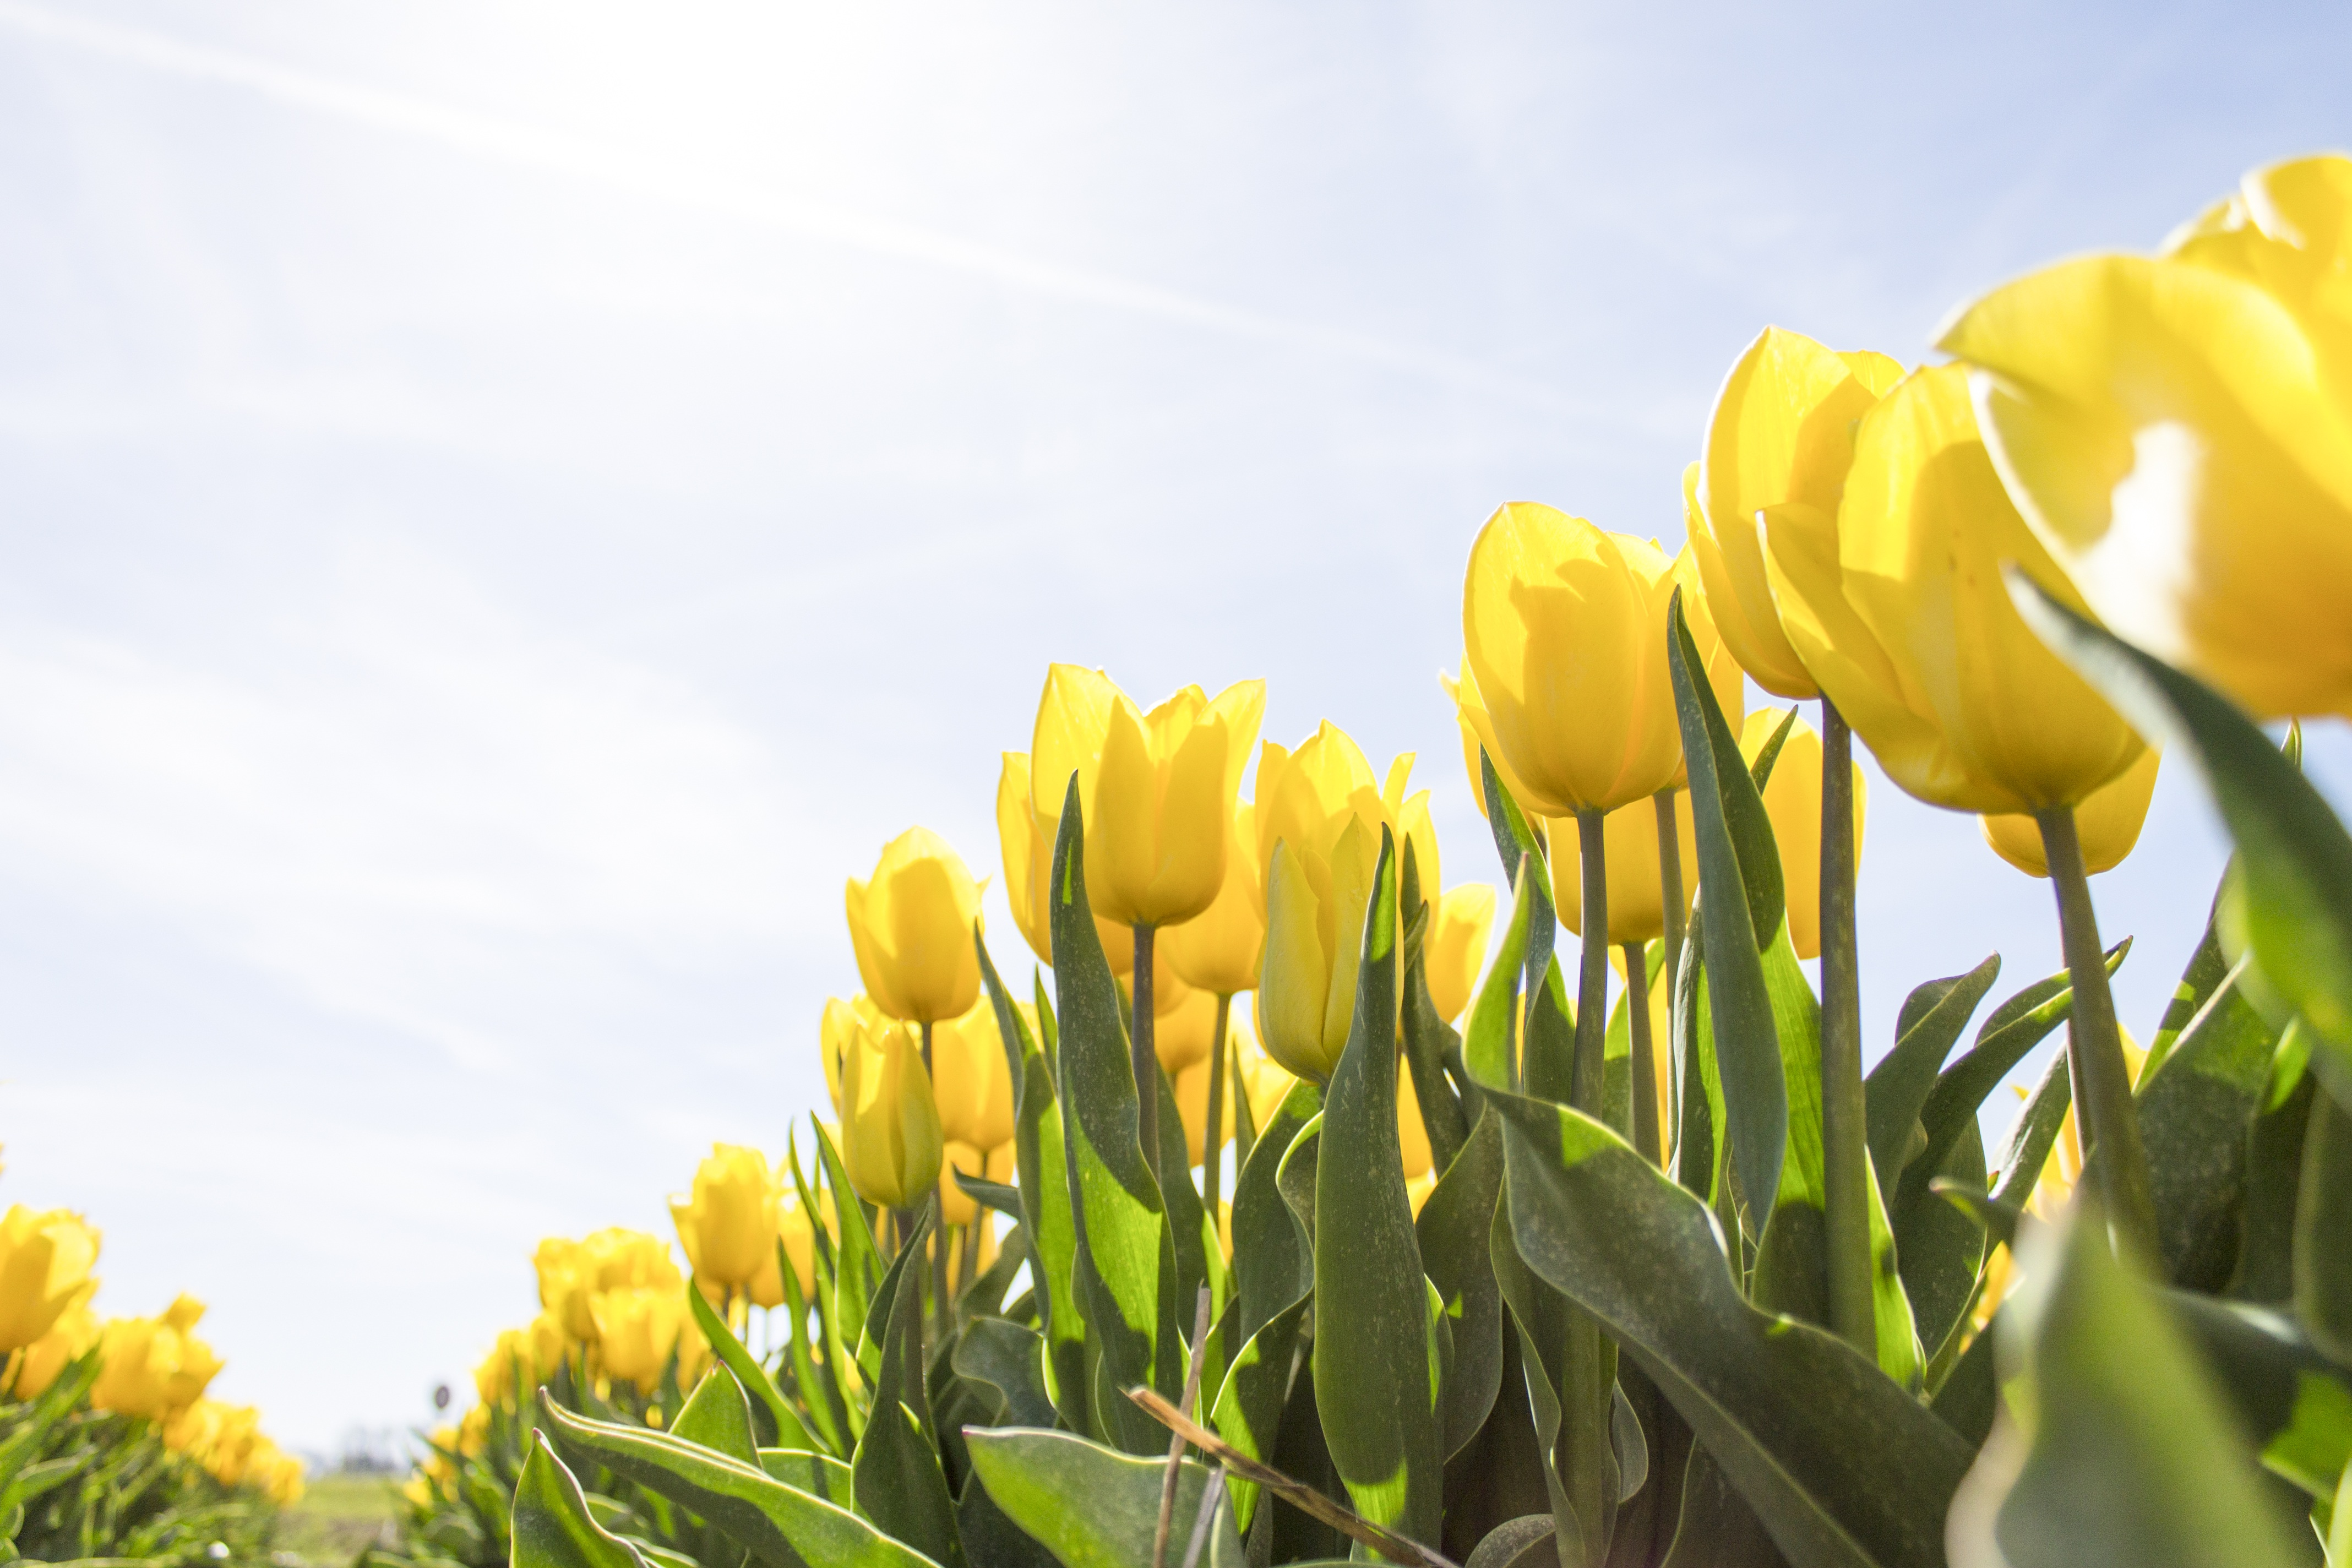 Yellow Tulip Flower Field during Daytime · Free Stock Photo